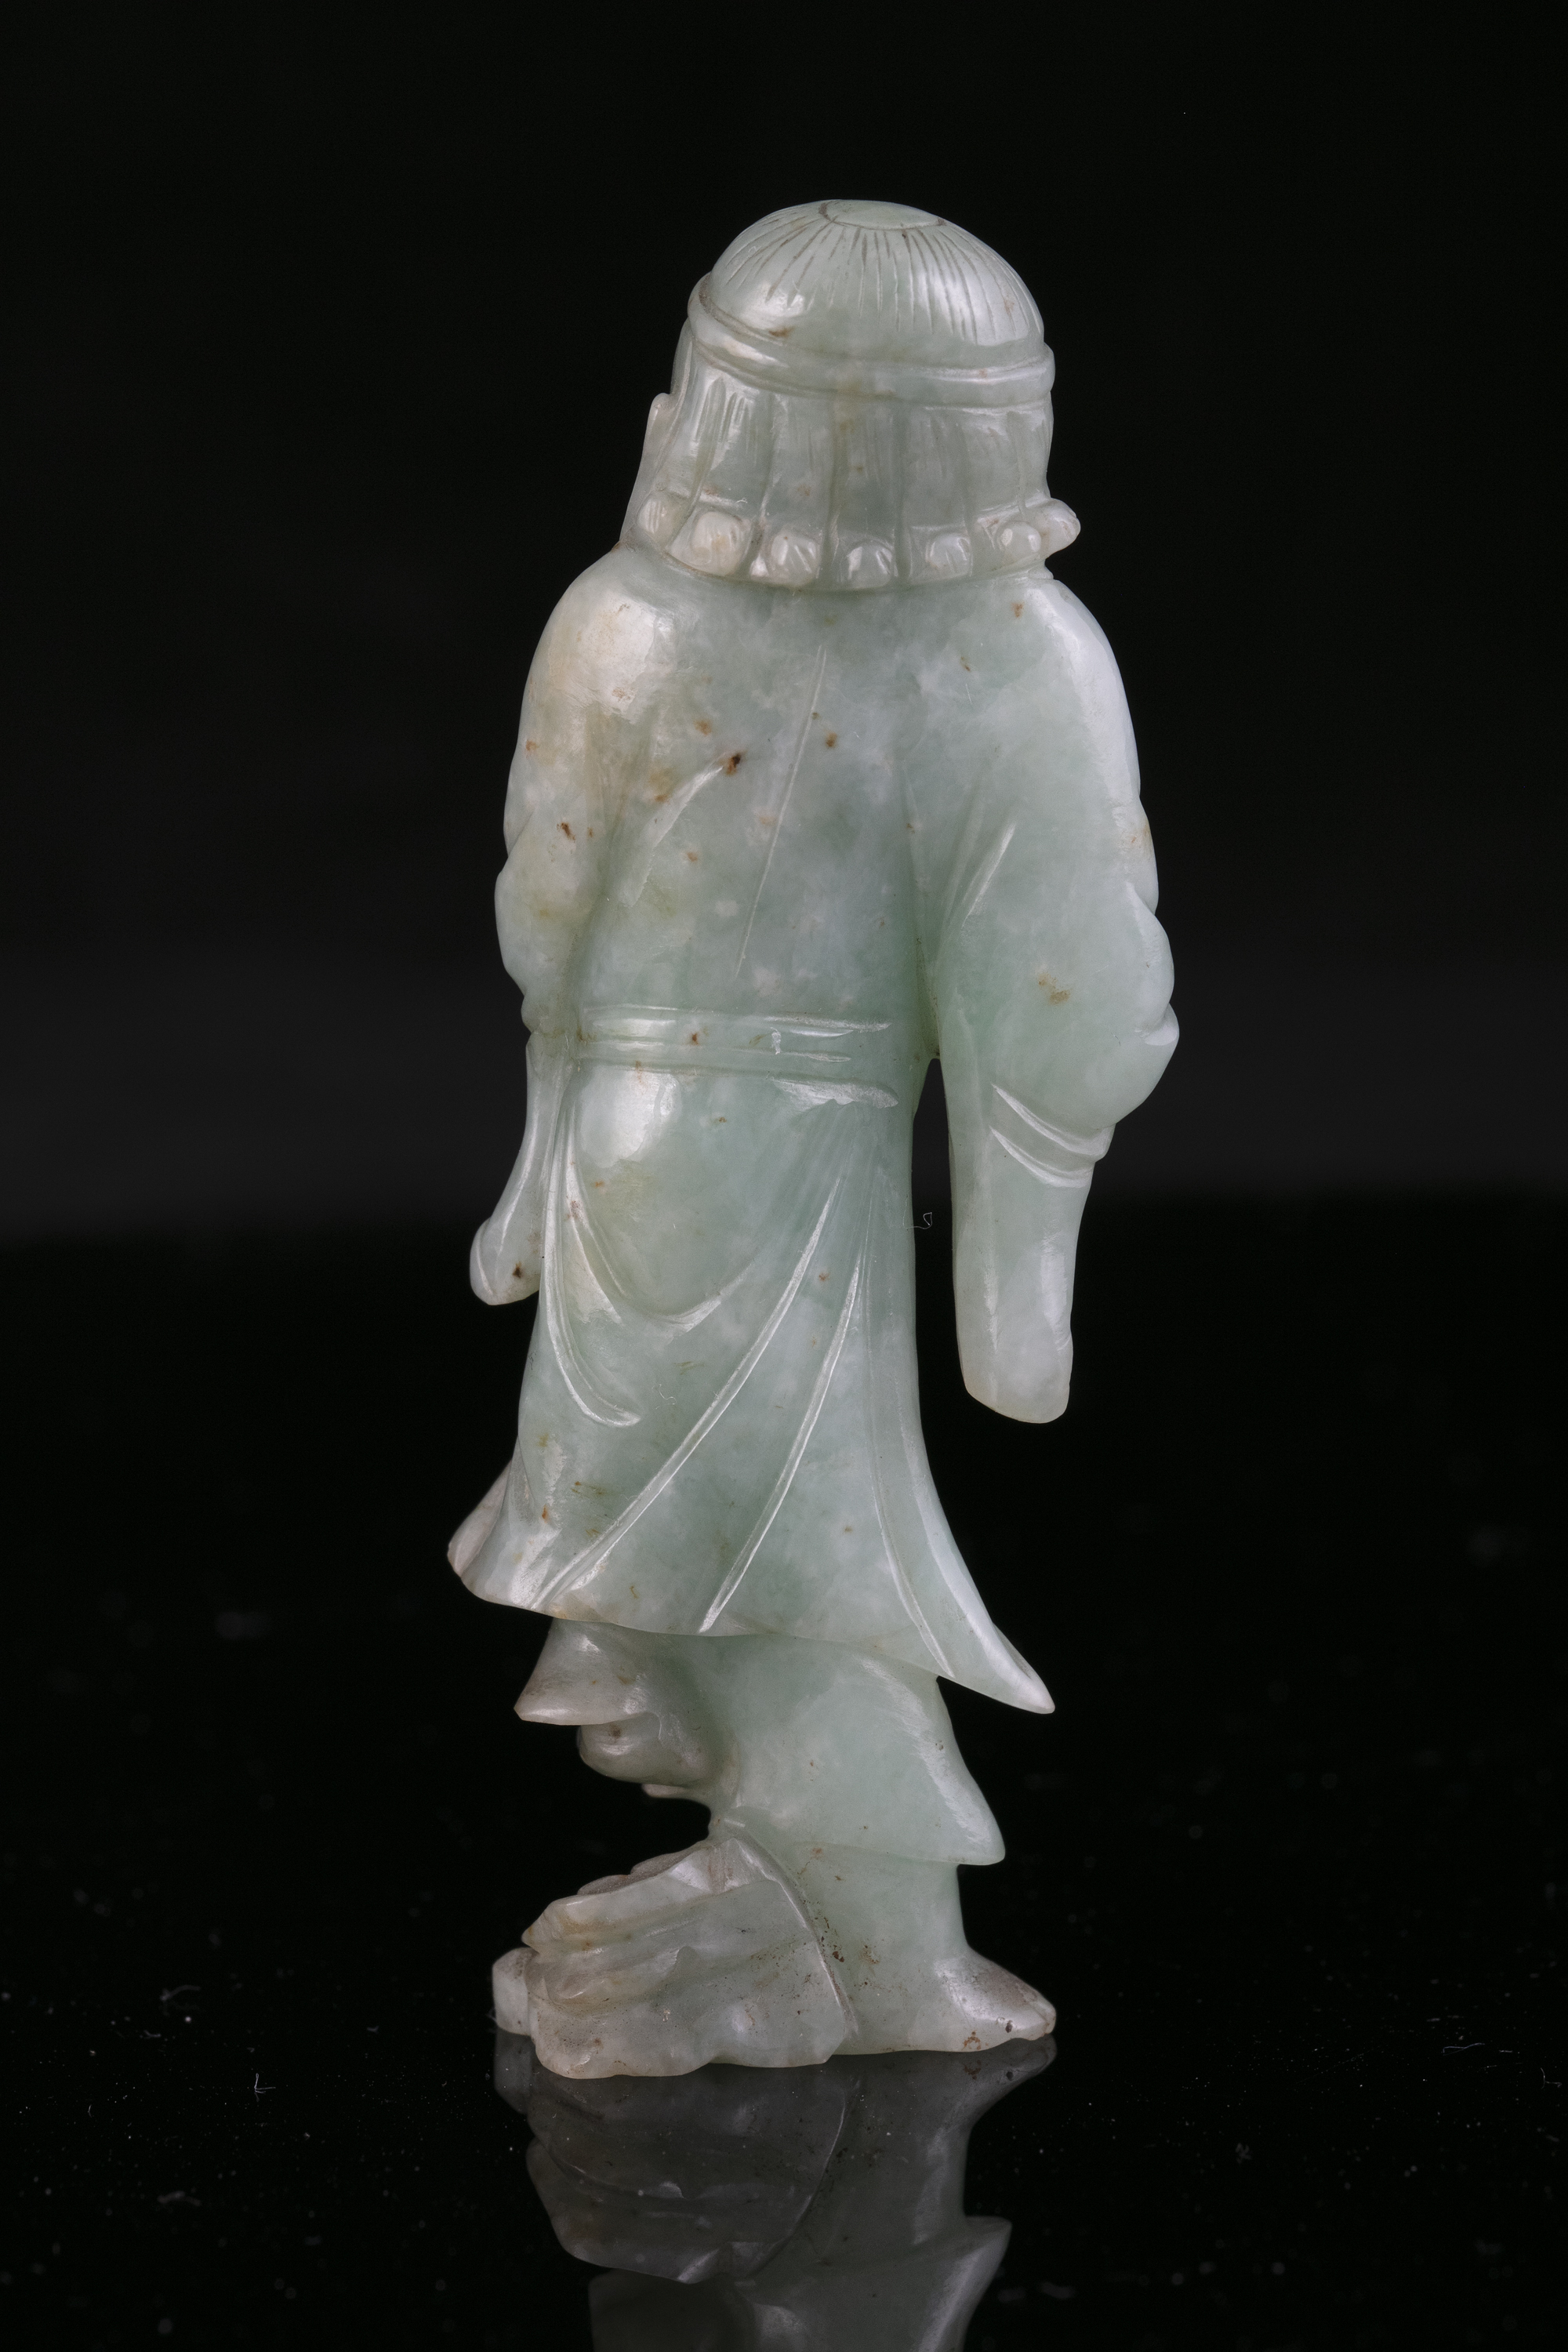 A JADEITE JADE FIGURE OF A STANDING TIEGUAI LI China, Circa 1900 The immortal is depicted with a - Image 9 of 20